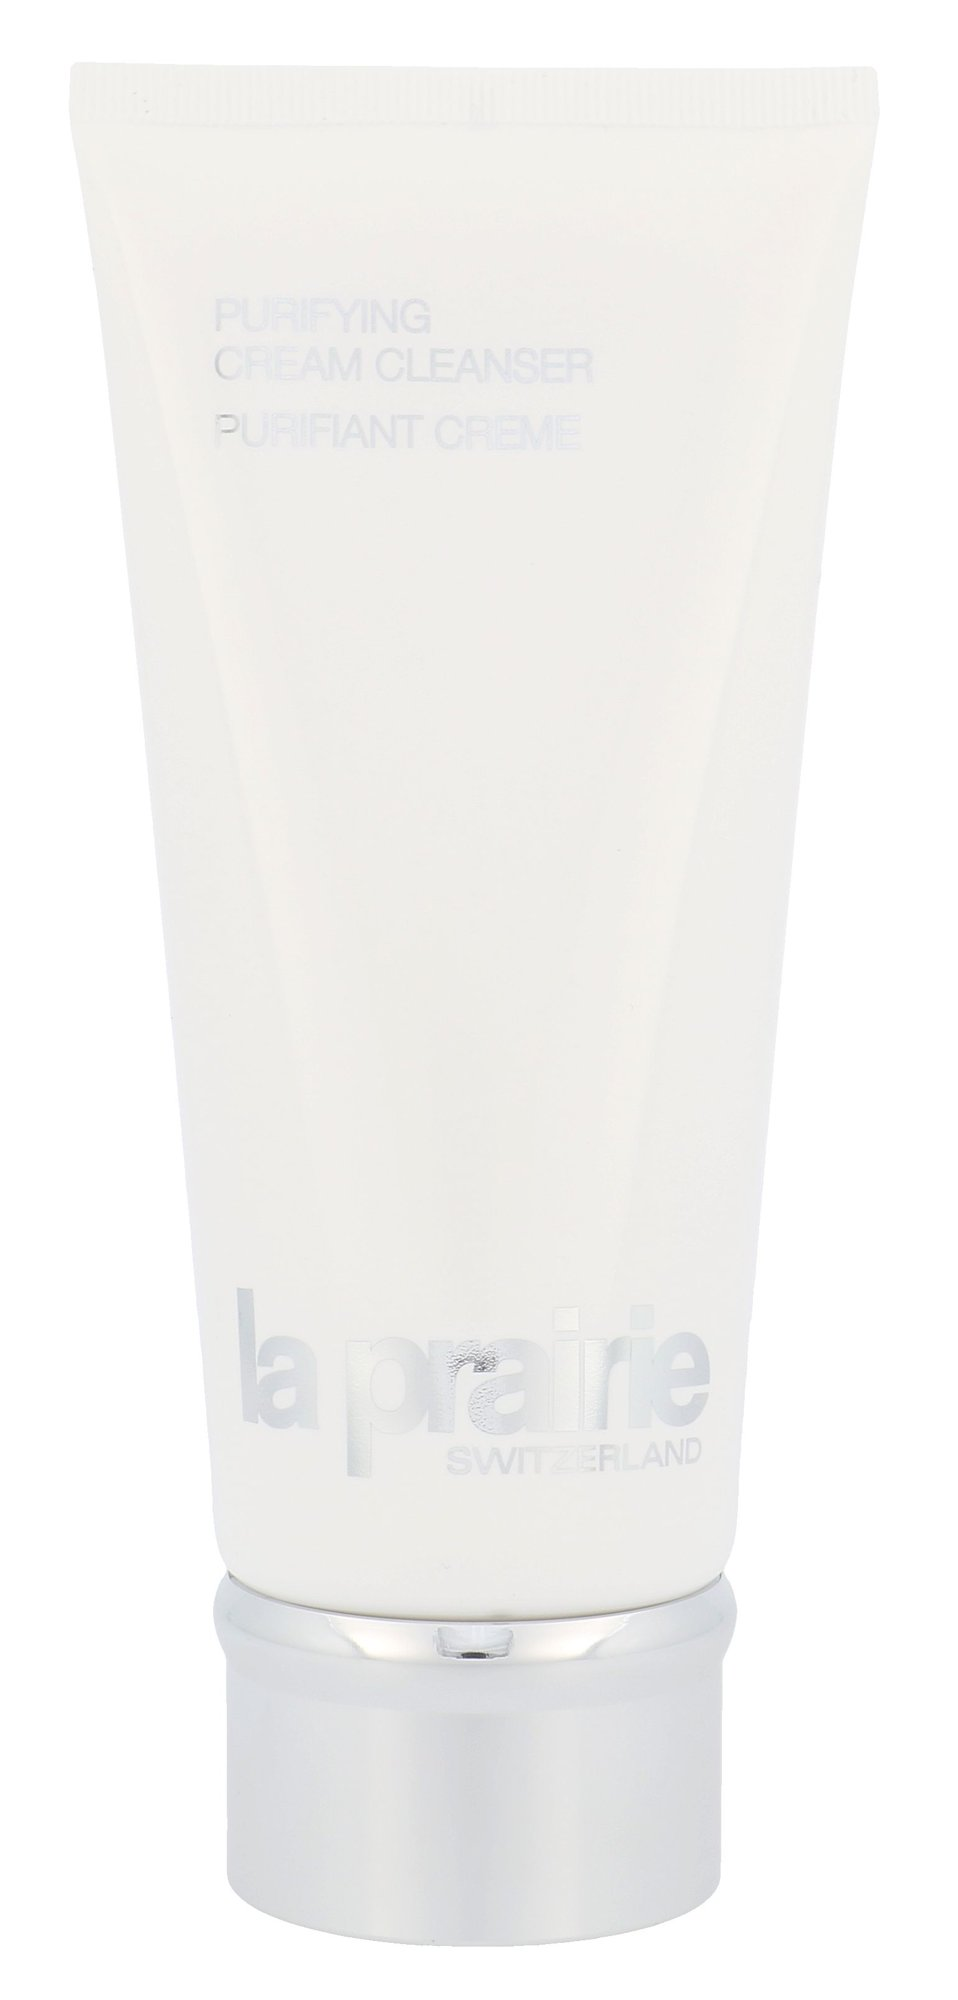 La Prairie Purifying Cream Cleanser Cosmetic 200ml